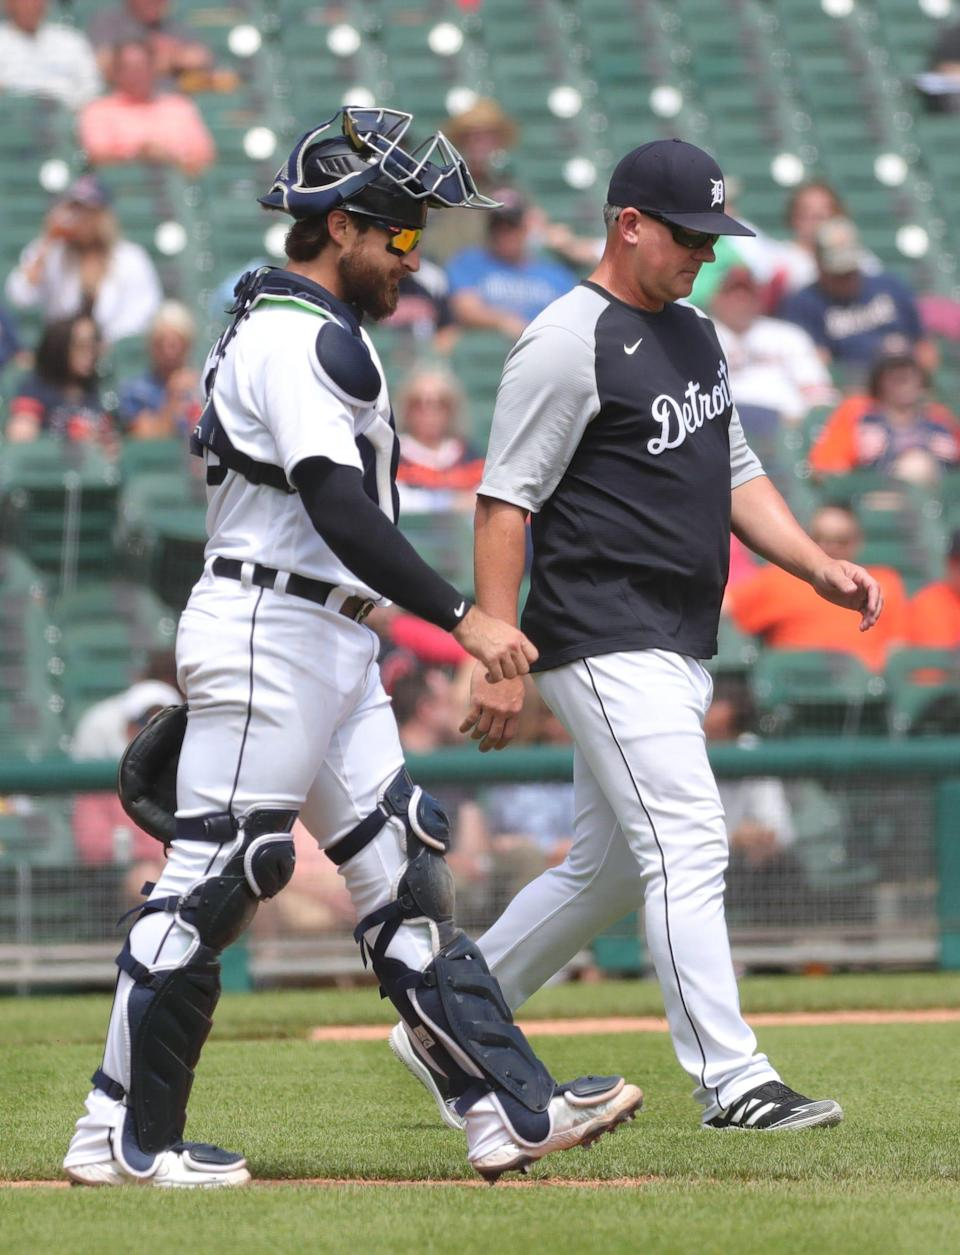 Tigers catcher Eric Haase and manager AJ Hinch walk to the mound during during the sixth inning on Thursday, May 27, 2021, at Comerica Park.